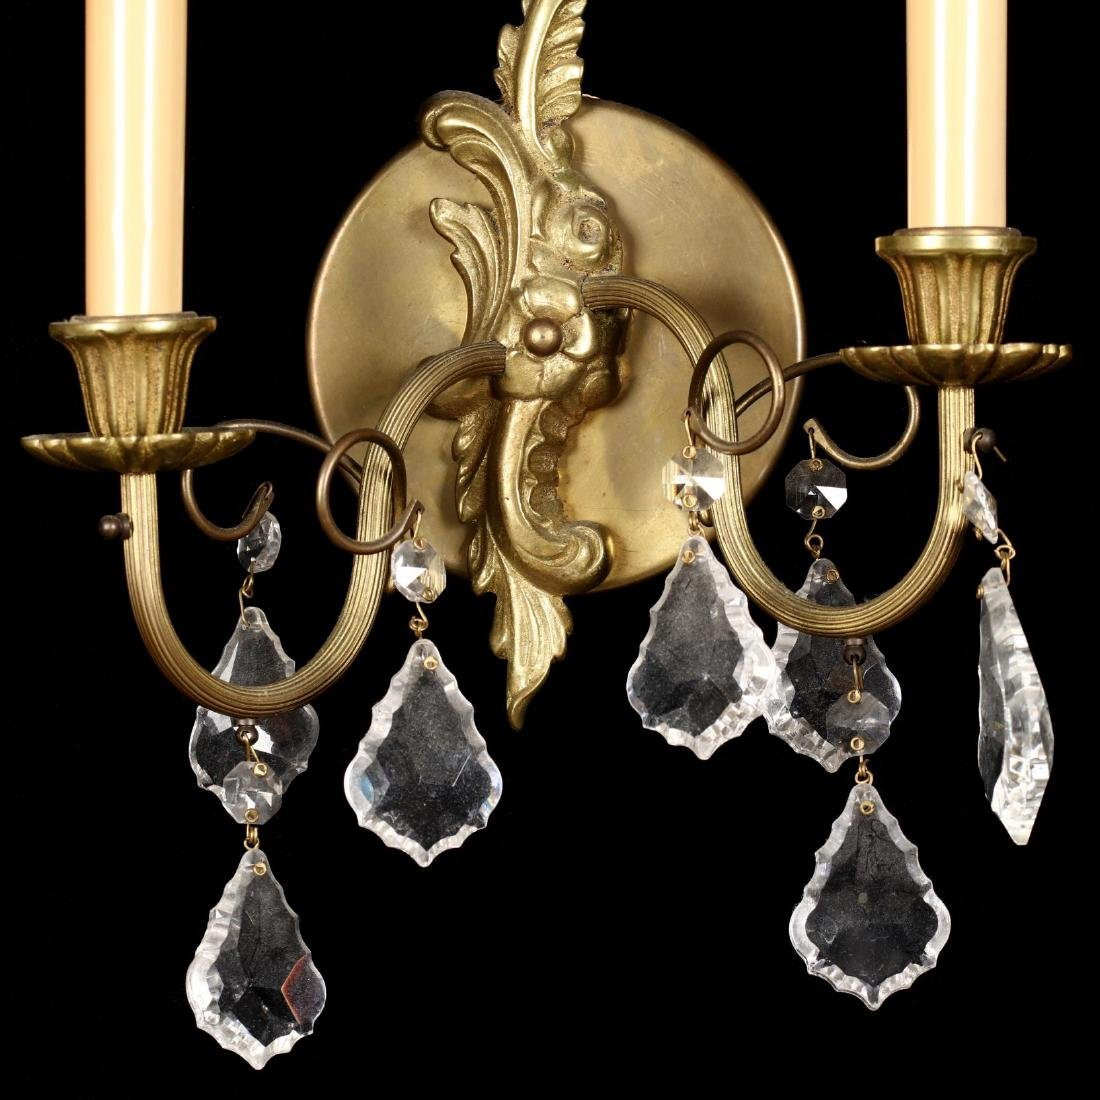 Pair of French Rococo Style Drop Prism Wall Sconces - 3